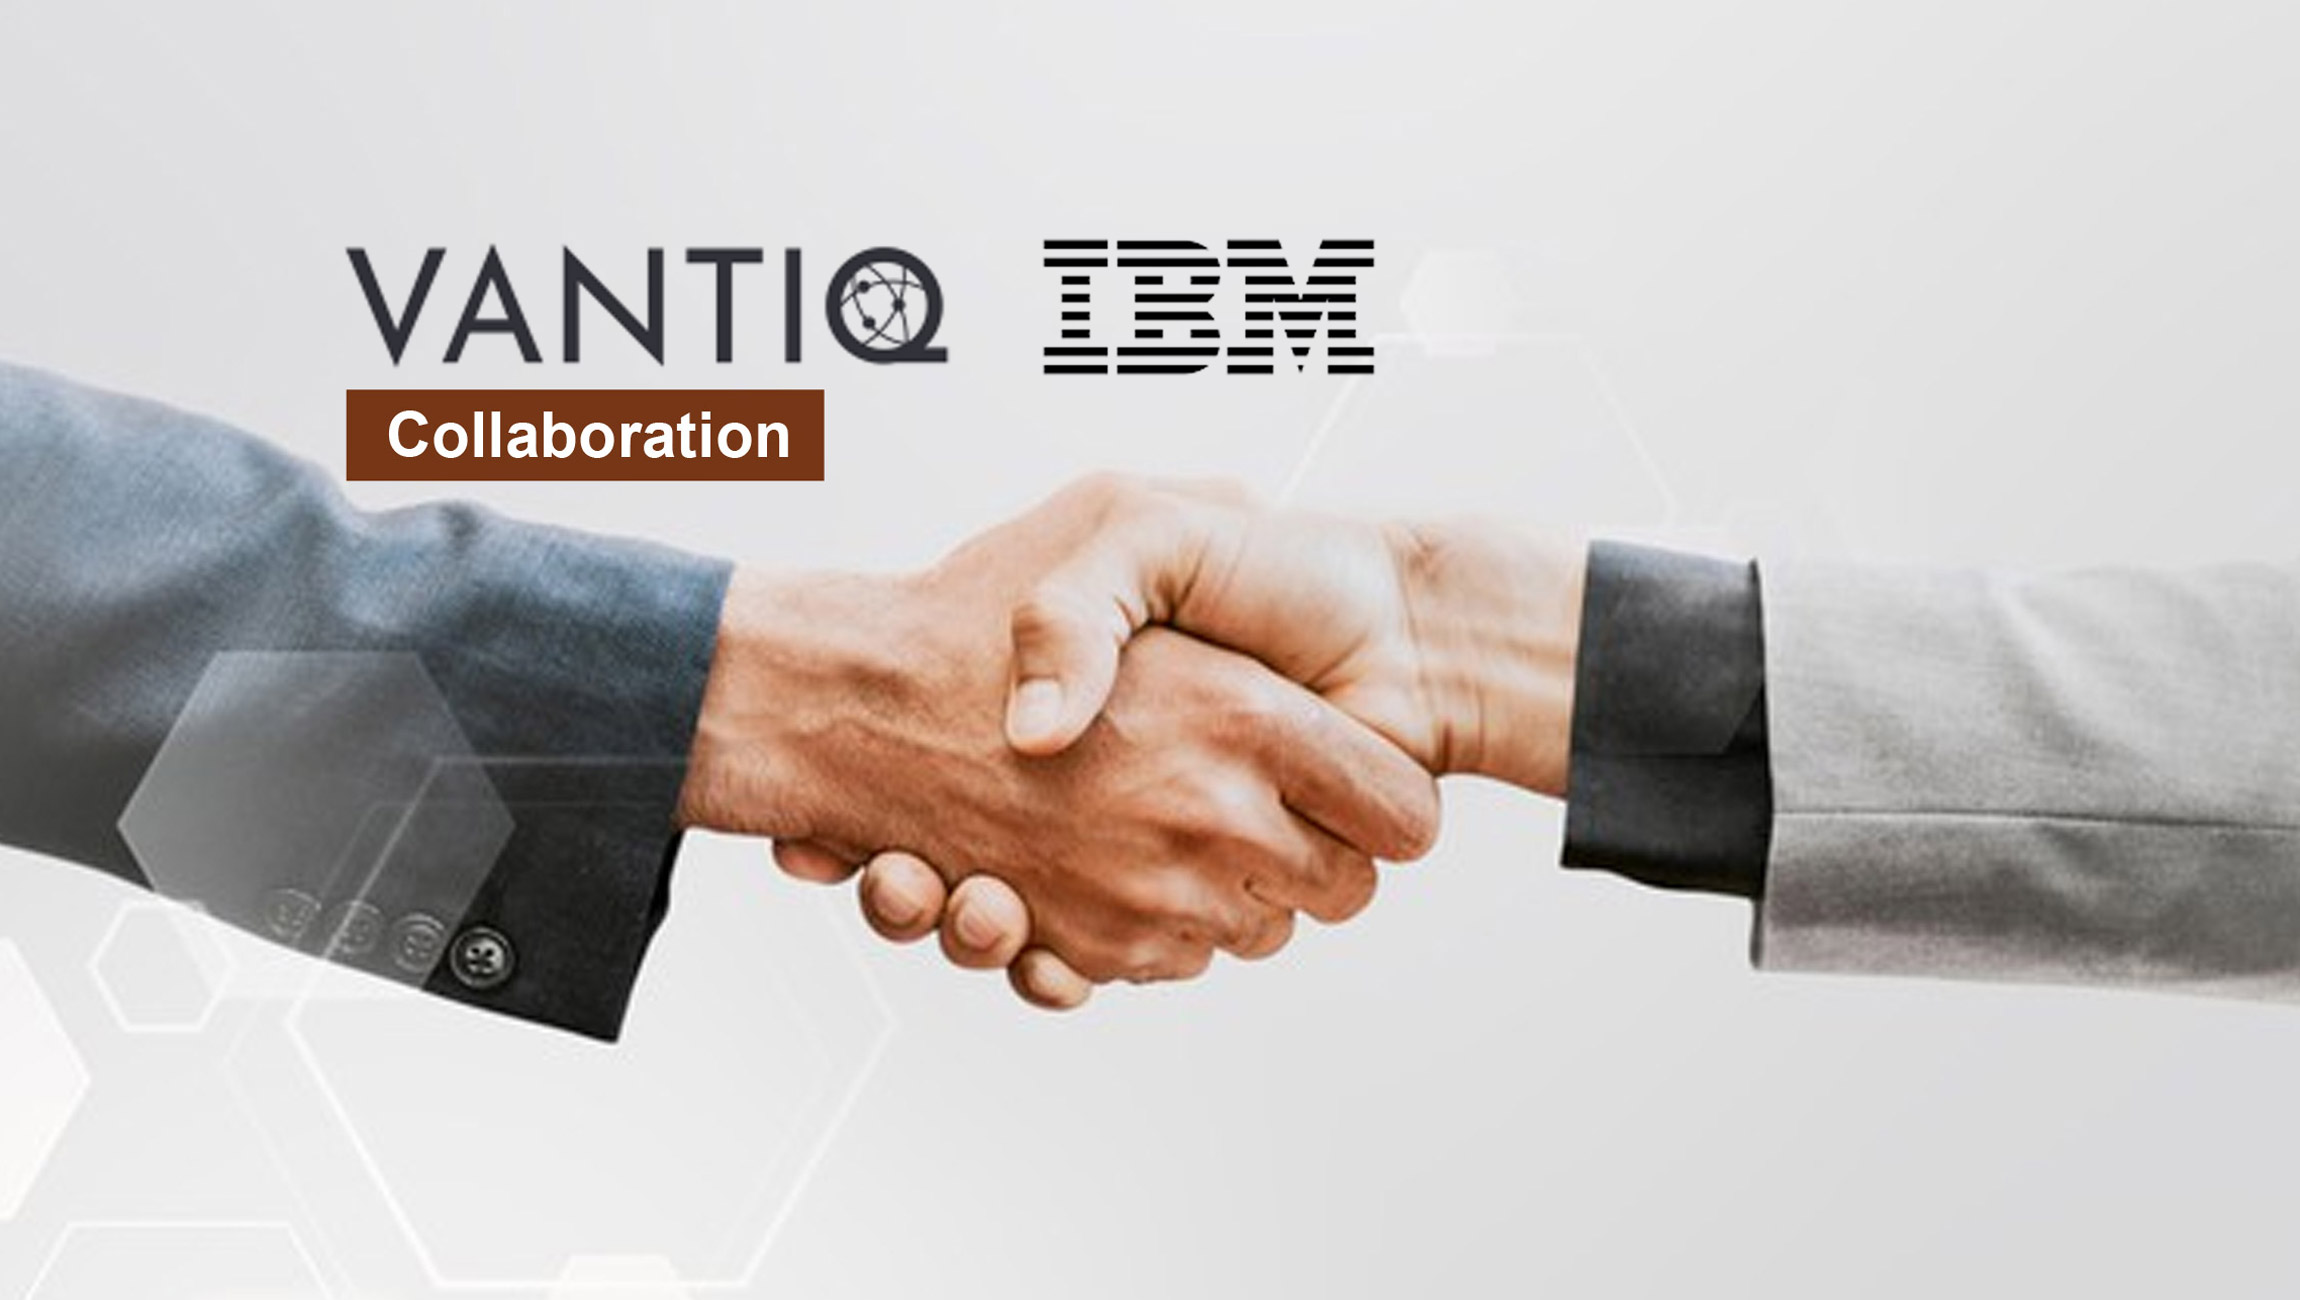 Vantiq and IBM Collaborate to Deliver Edge Solutions at Scale for Enterprise Clients